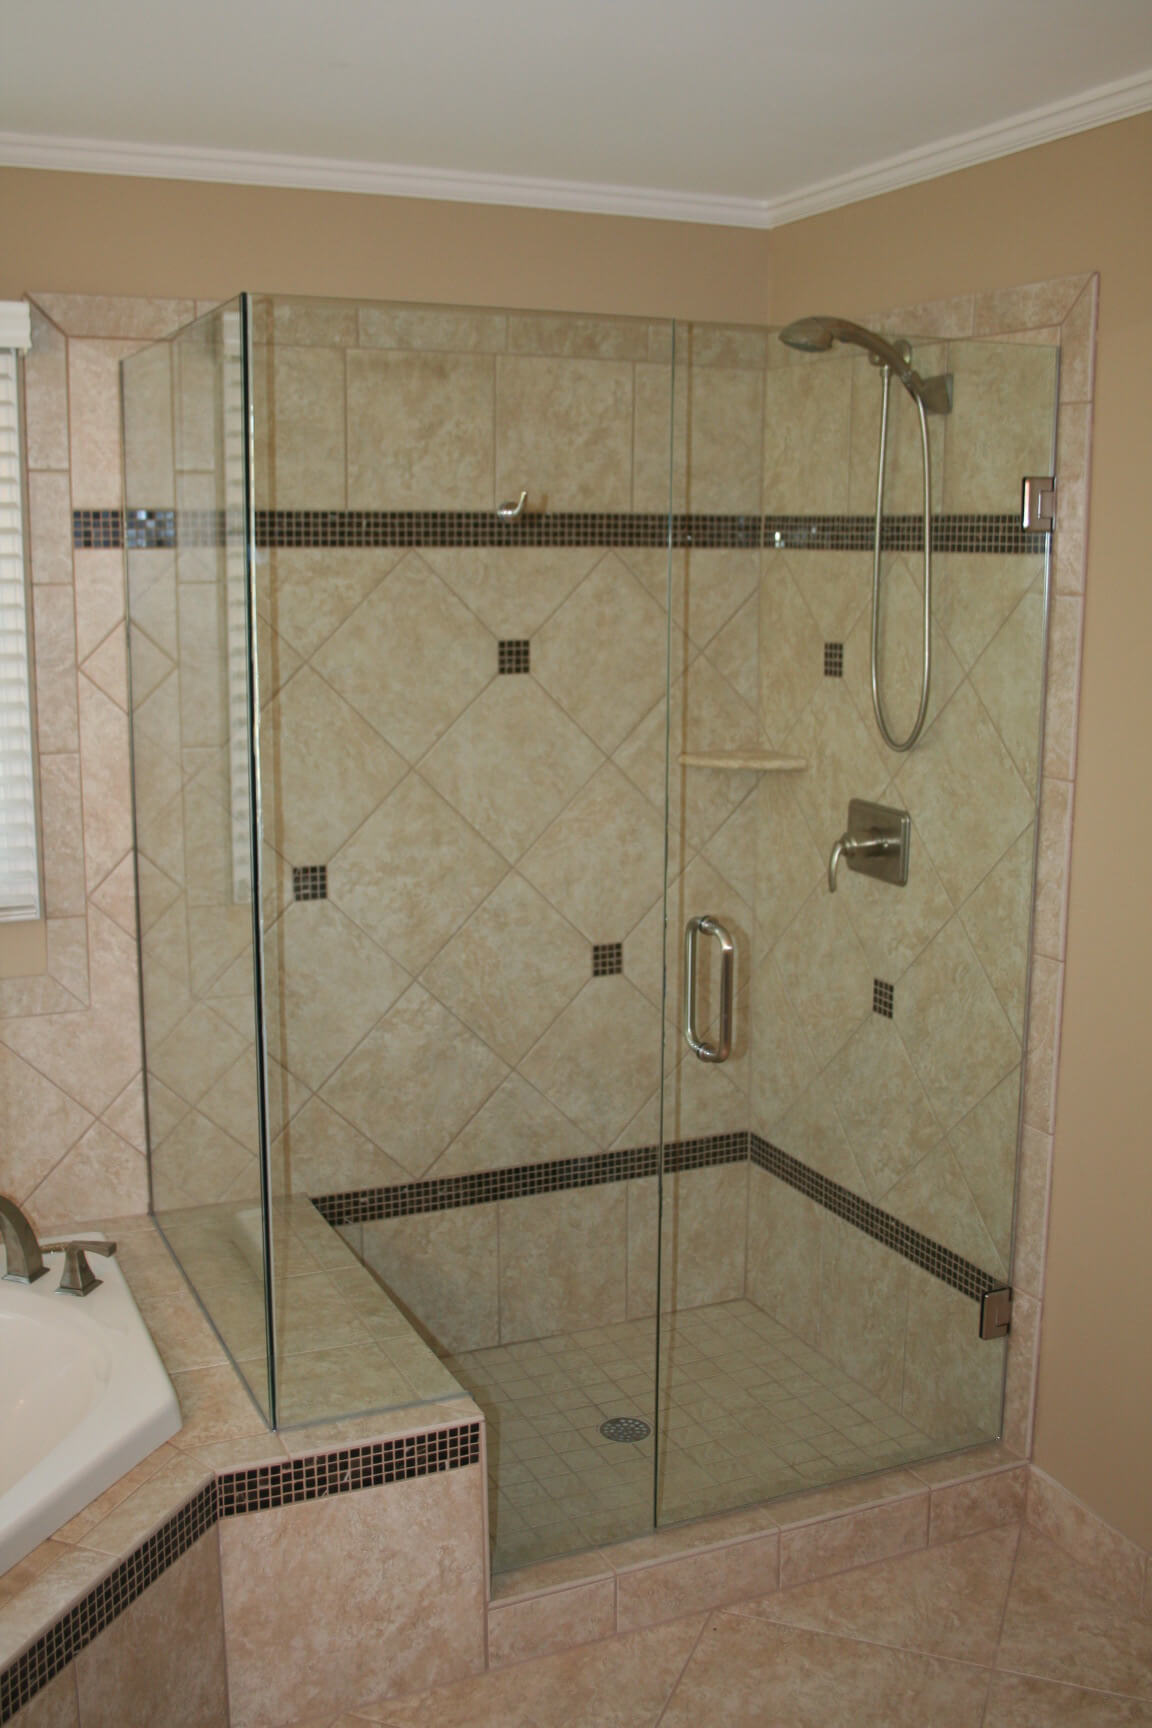 Dg 3 Bathroom glass doors design